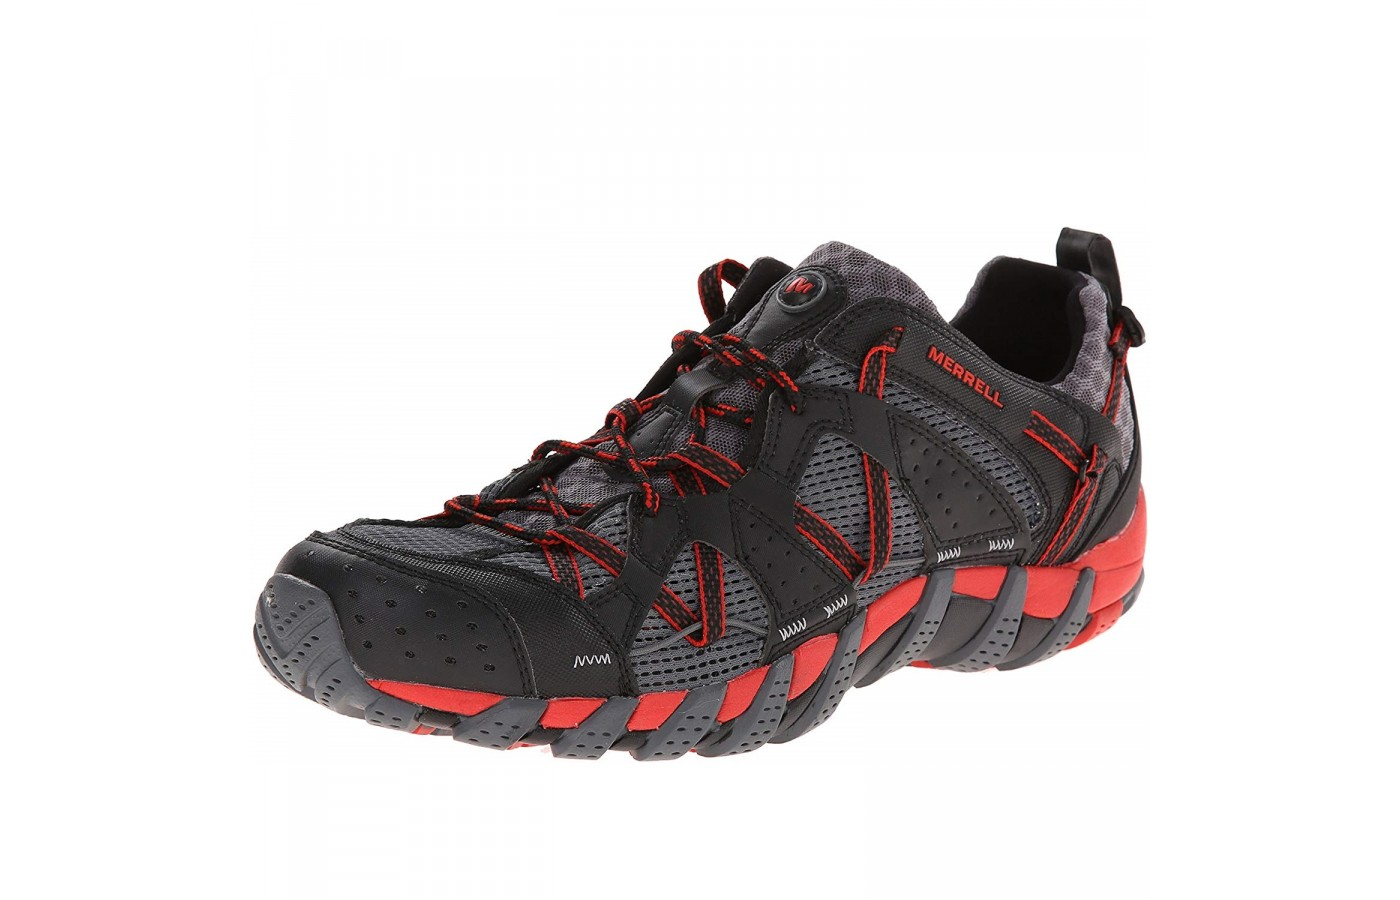 The Merrell Waterpro Maipo offers water friendly synthetic and mesh uppers for breathability and lightness.